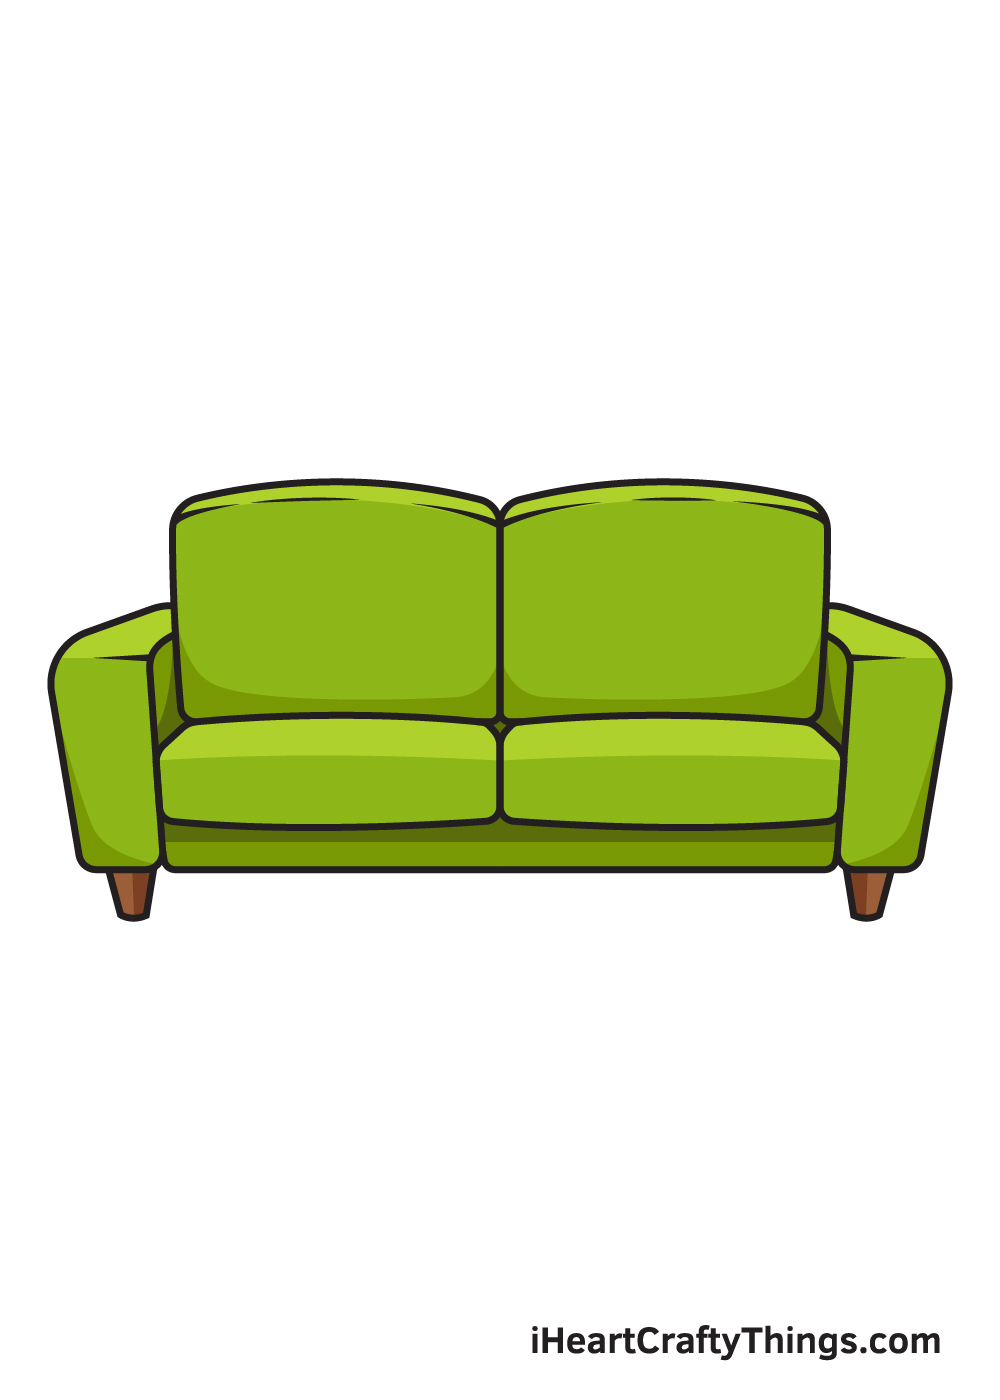 Couch Drawing - 9 Steps